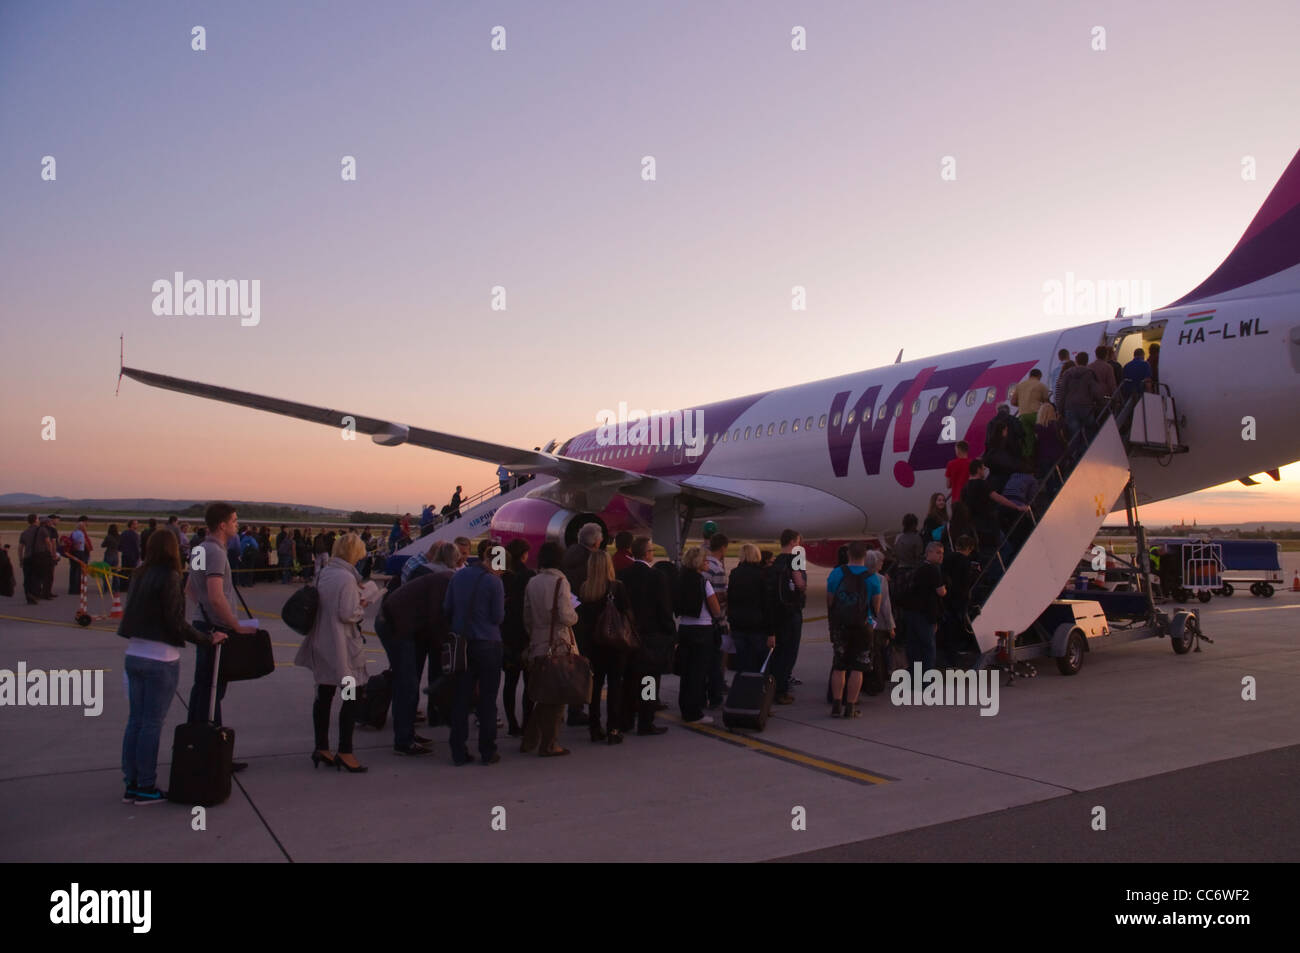 People getting on Wizzair airline aeroplane Letiste Brno the Brno airport Czech Republic Europe - Stock Image